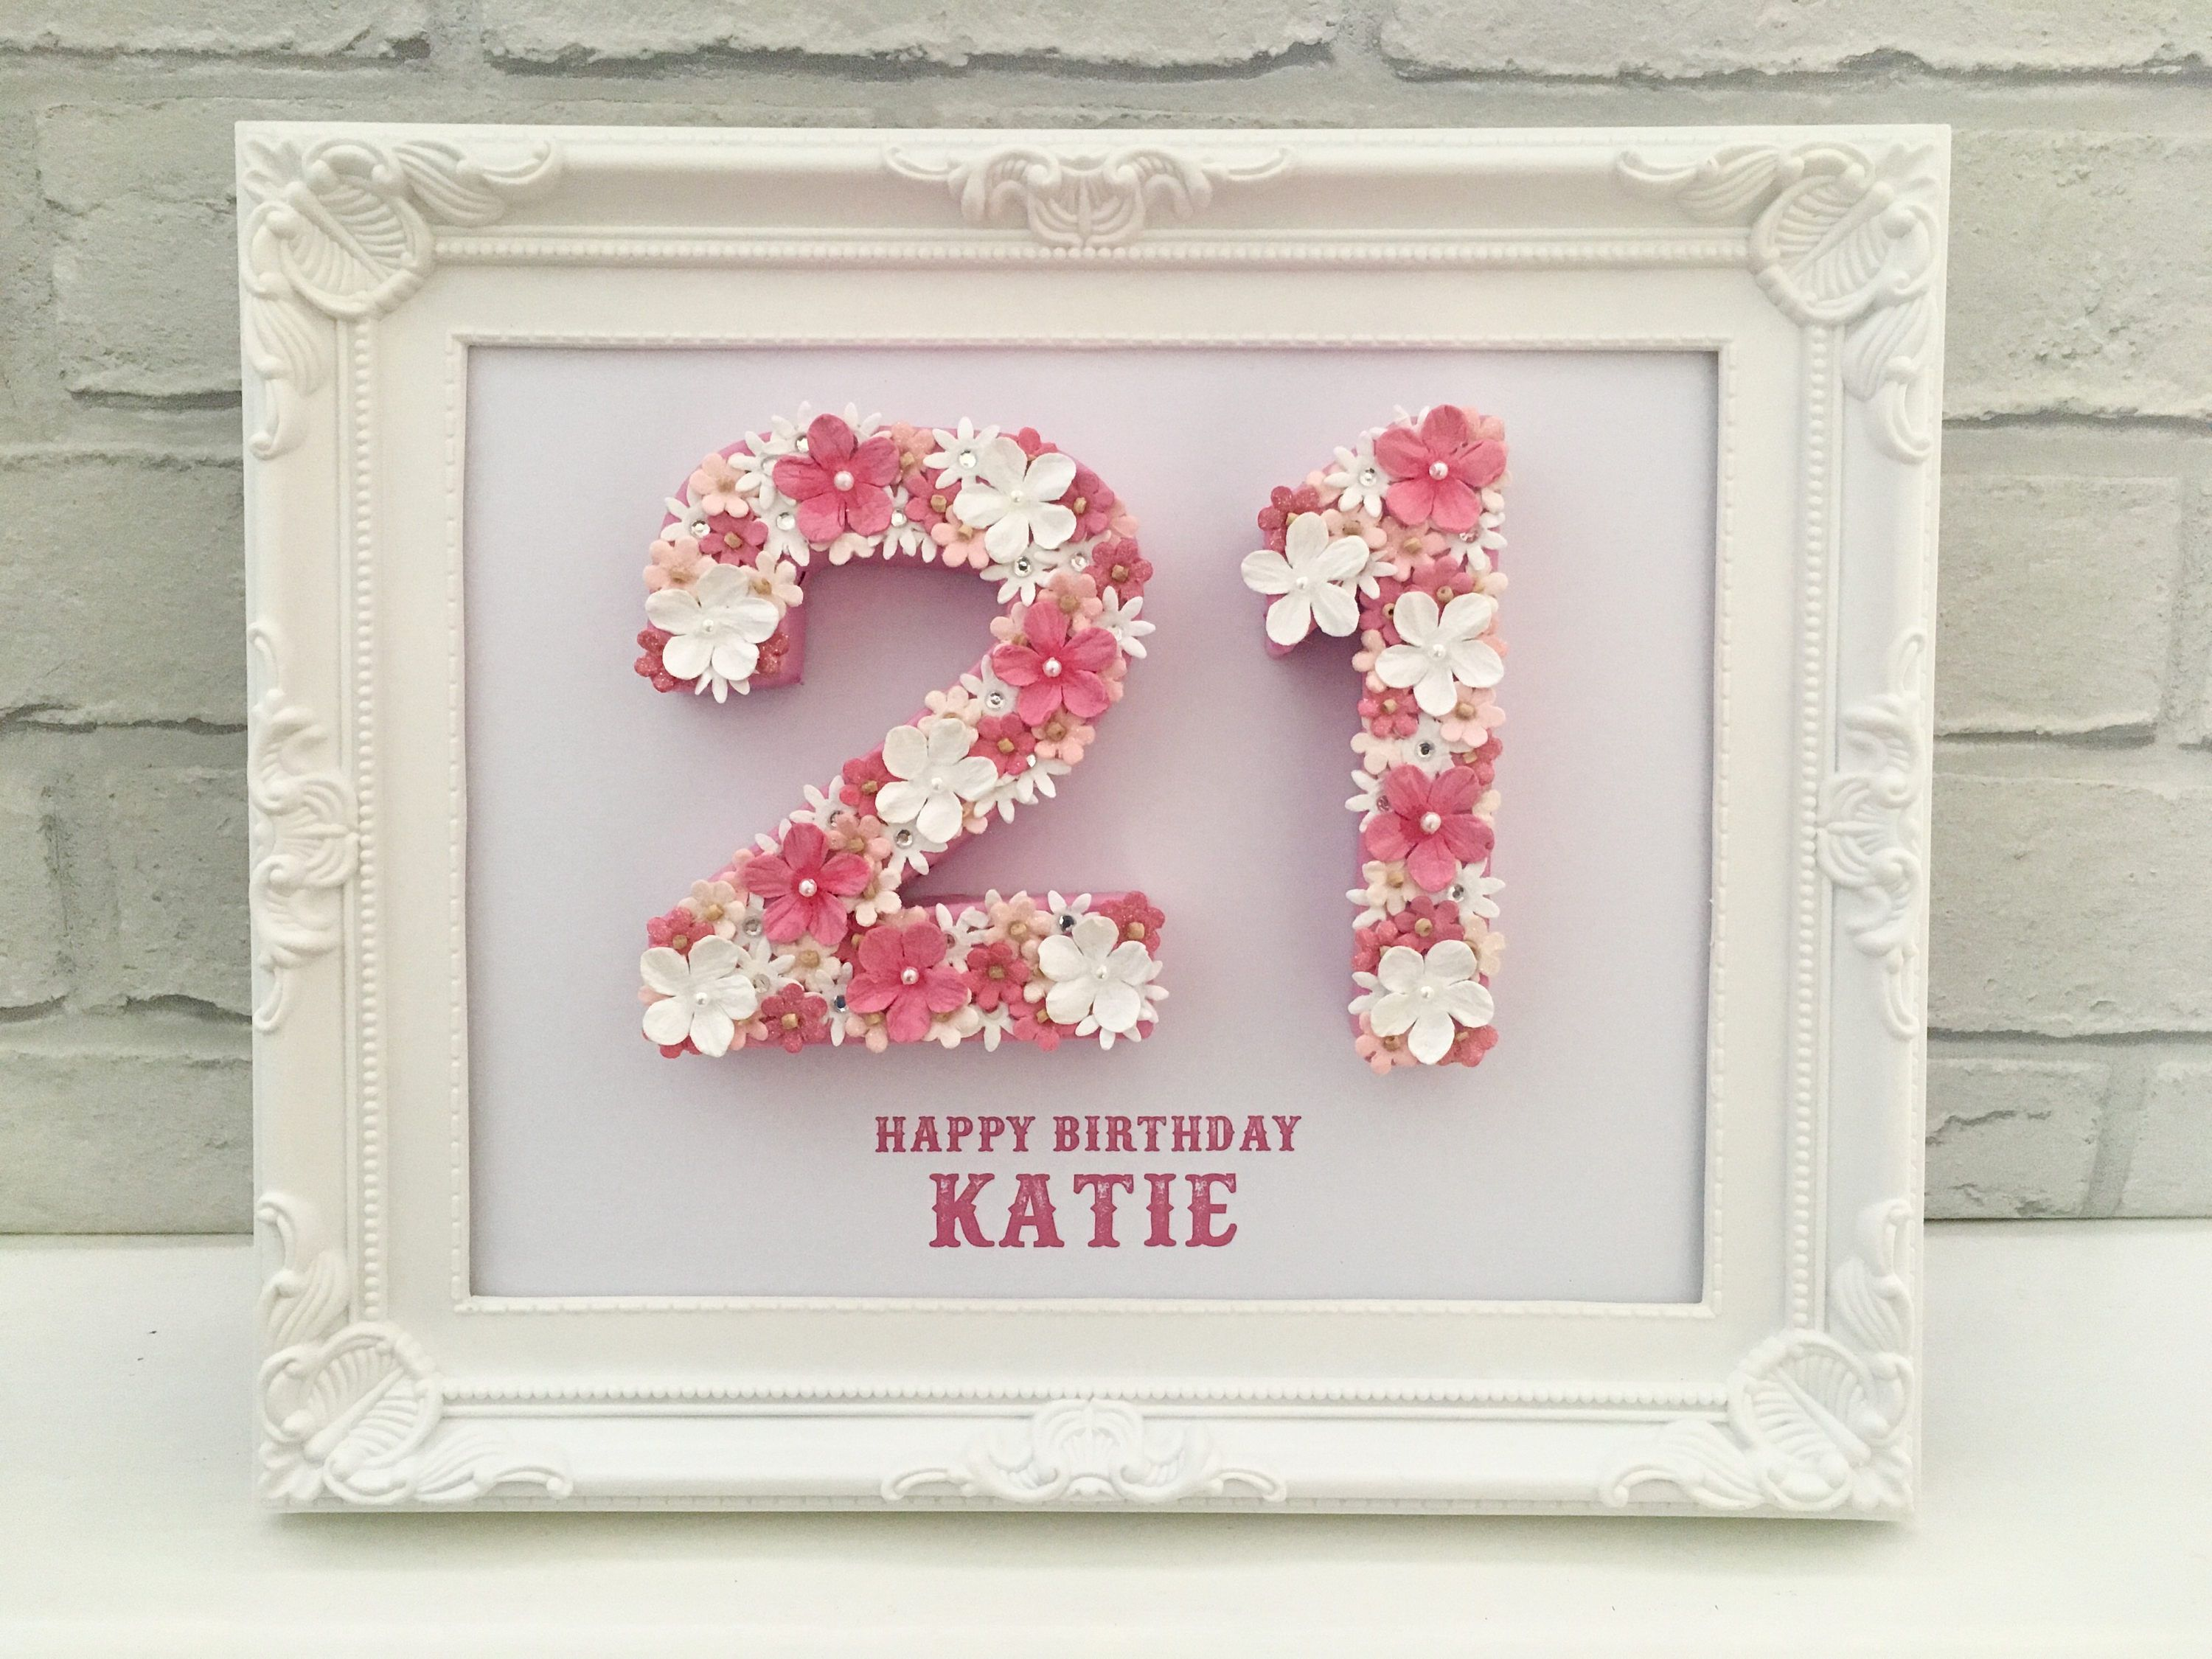 Unique 21st Birthday Gift Celebration Idea For Daughter Personalised Framed By